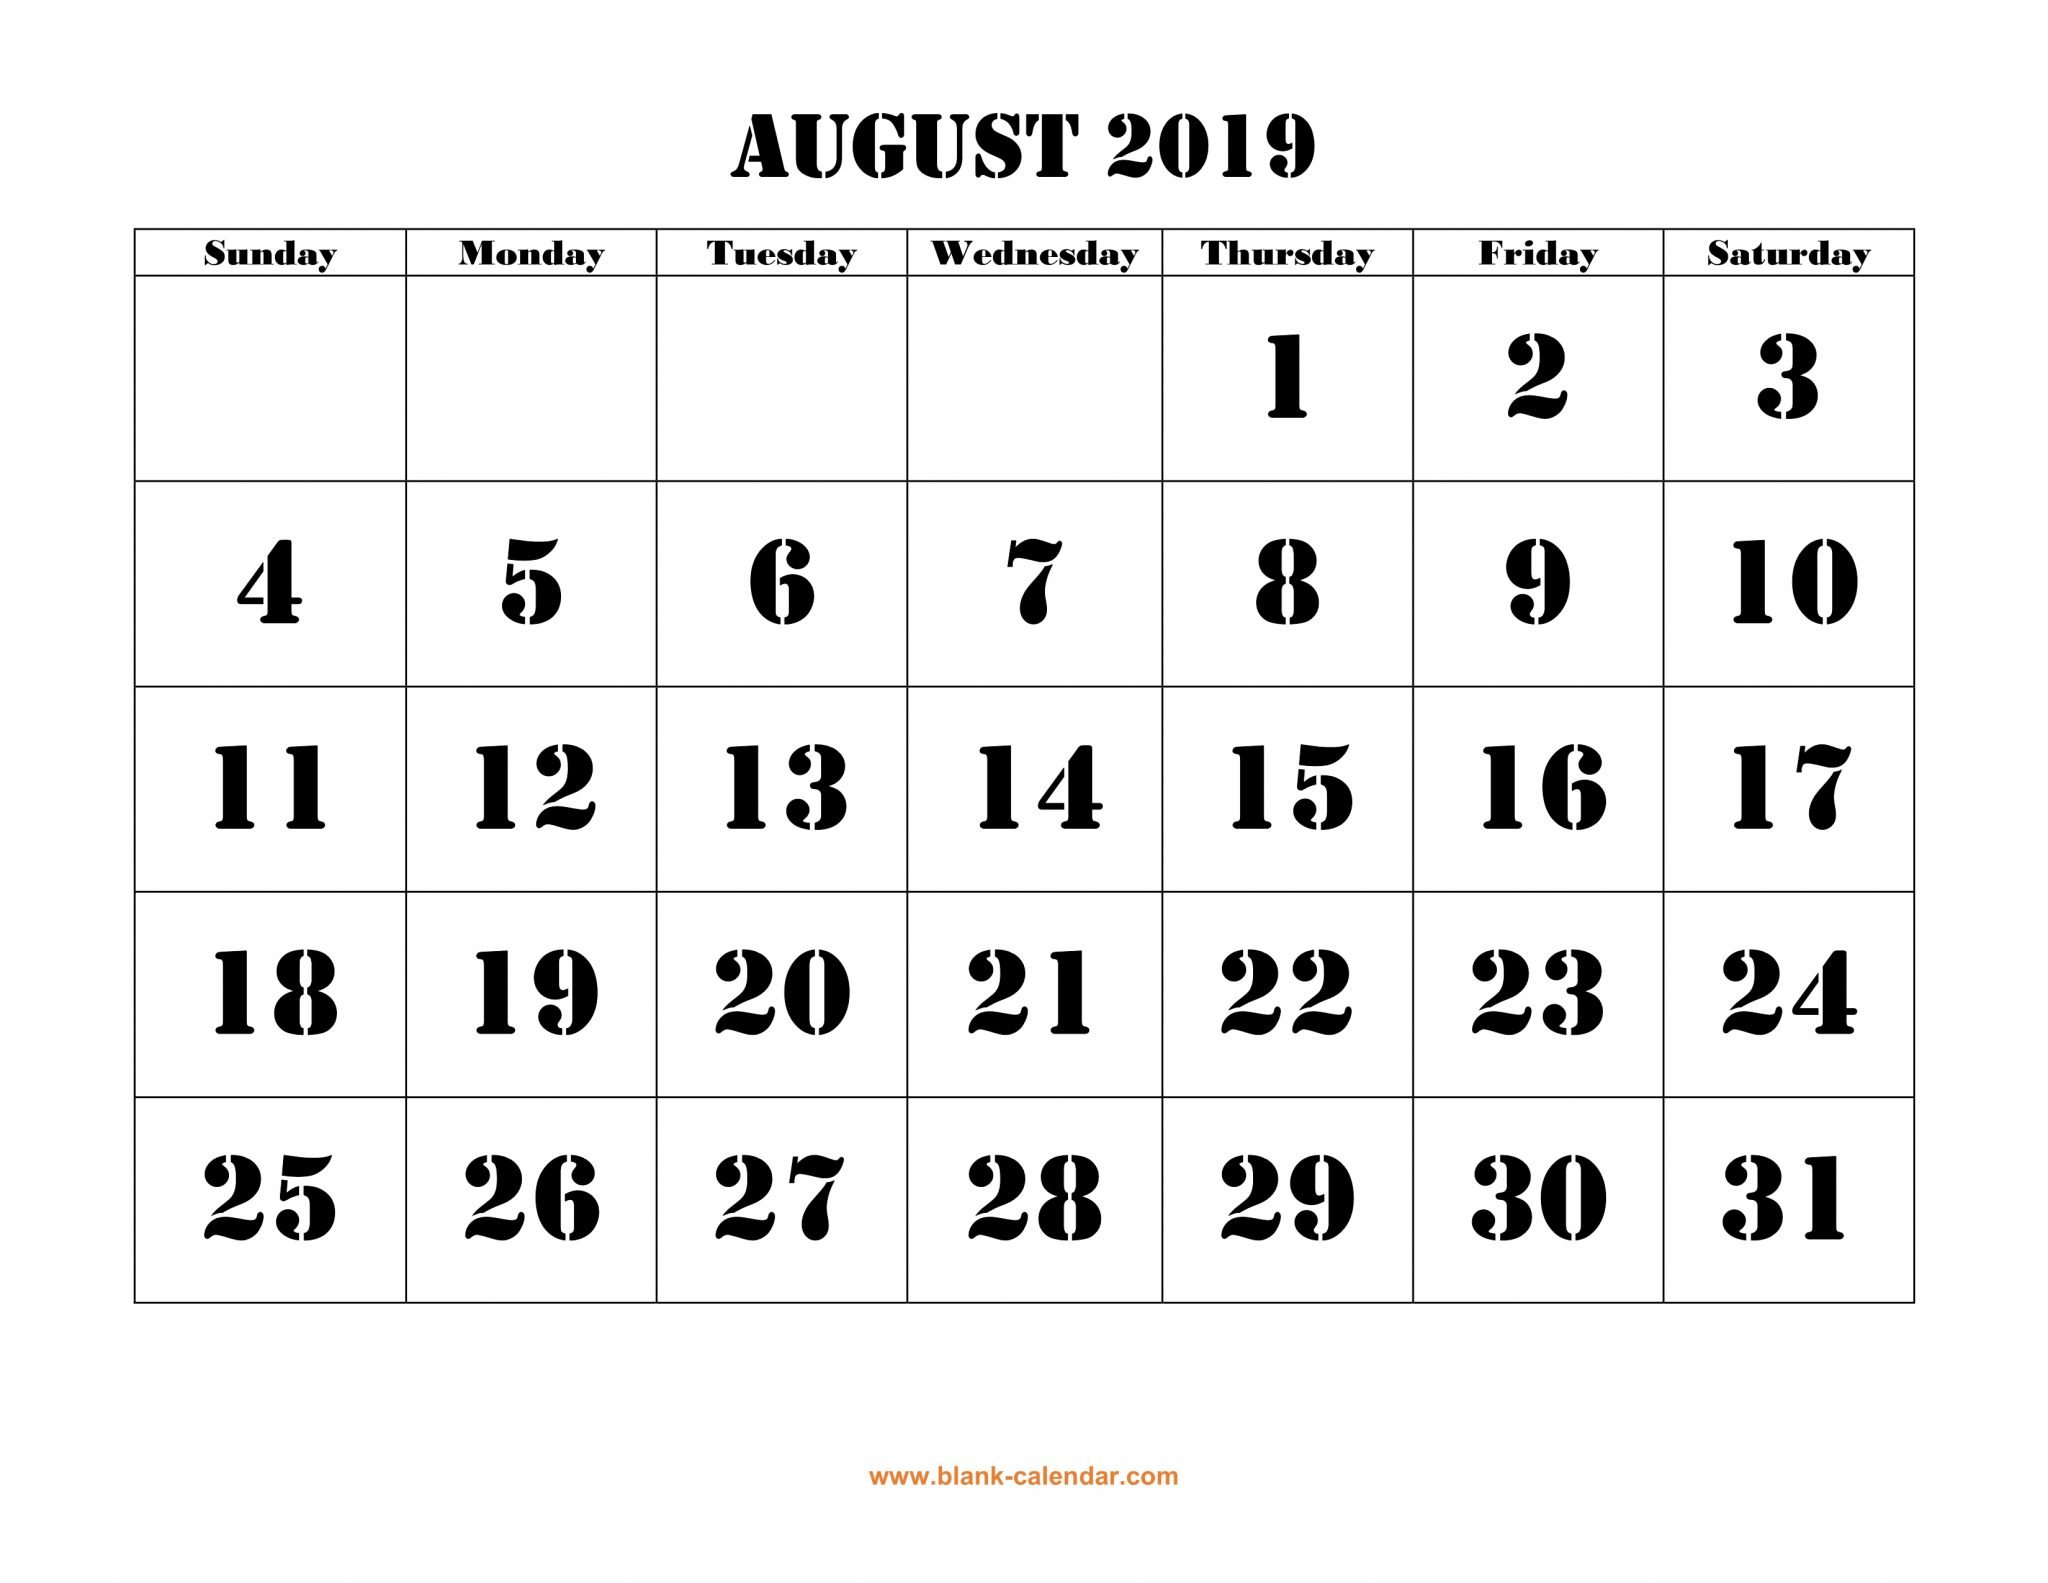 Calendar For August 2019 - Free Printable Calendar, Templates And August 9 2019 Calendar